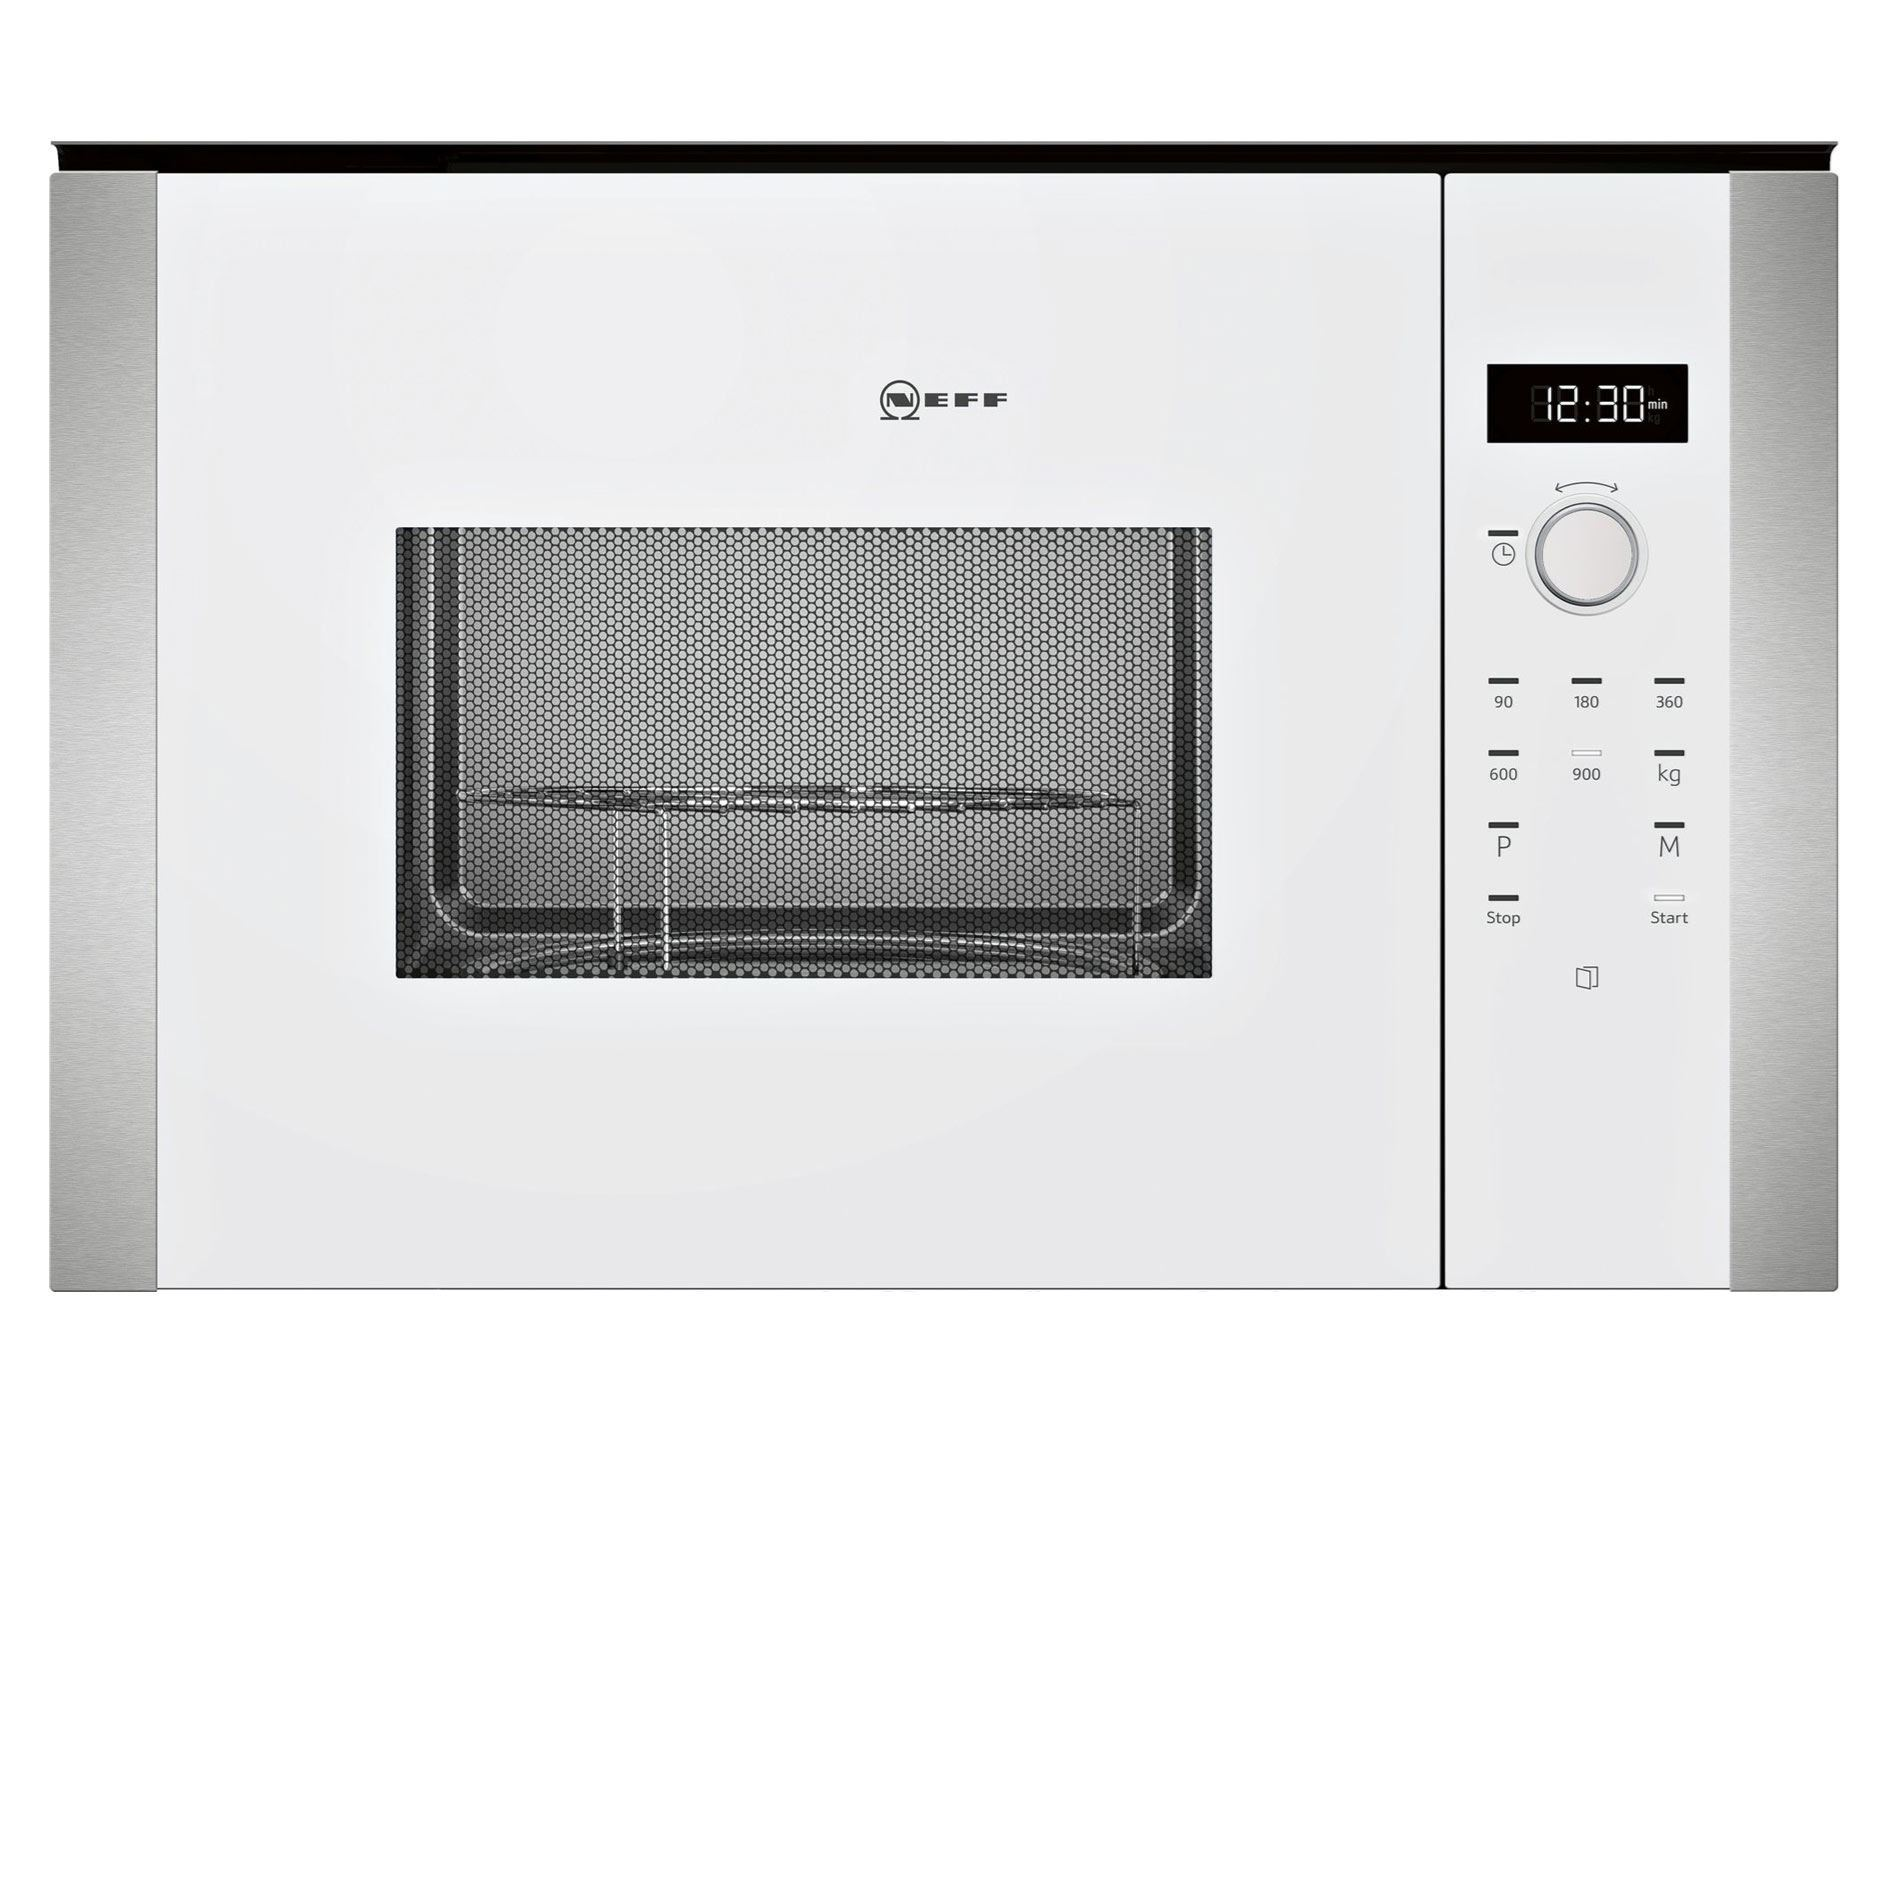 Picture of HLAWD53W0B Built-in Microwave Oven